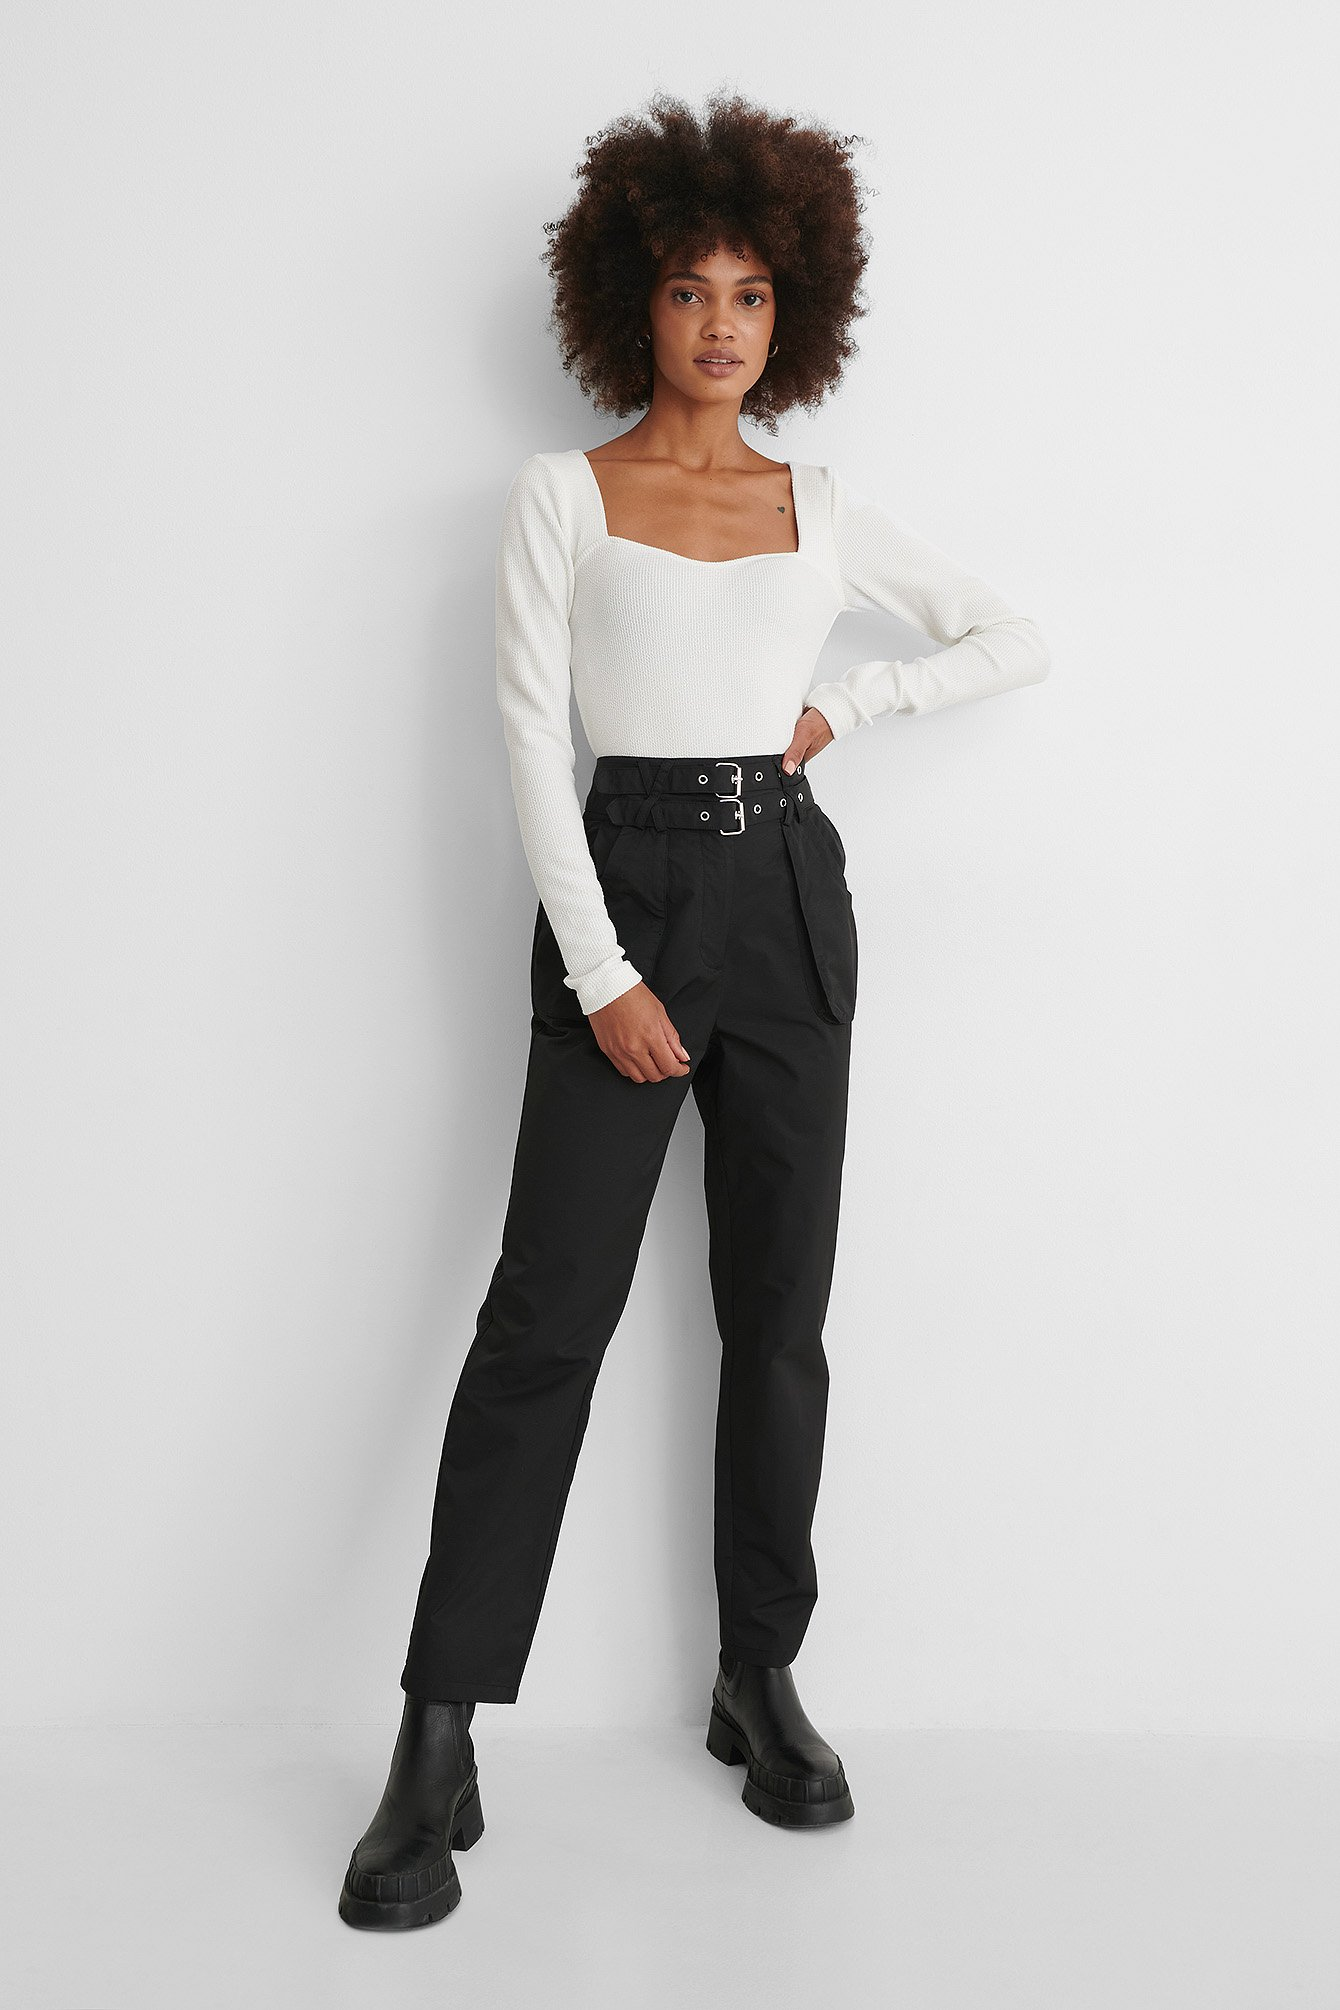 Utility Belted Pants Outfit.